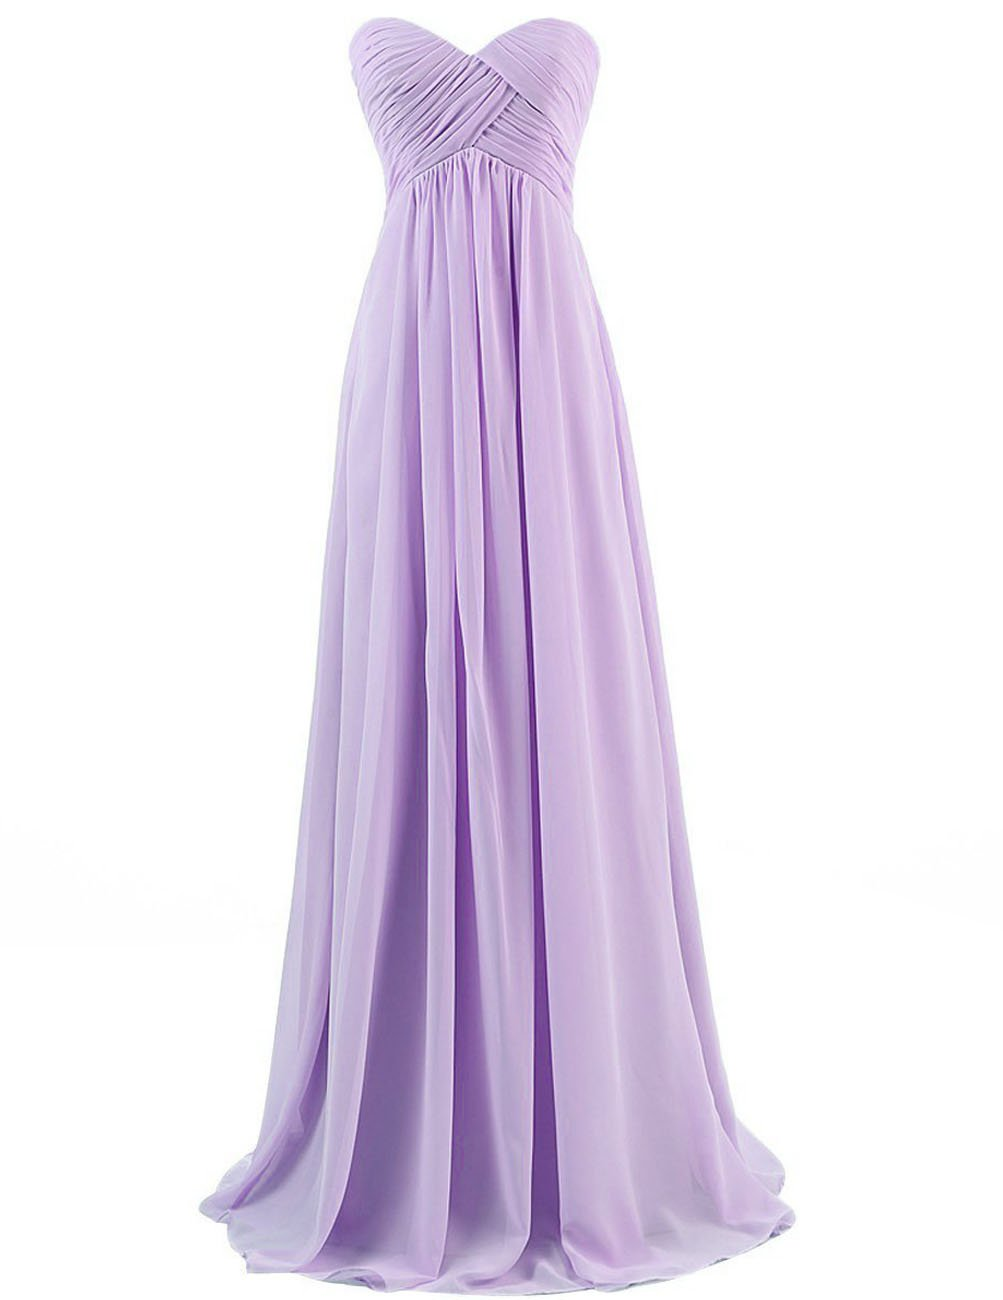 Cdress Chiffon Sweetheart Long Bridesmaid Dresses Plus Size Prom Party Formal Gowns